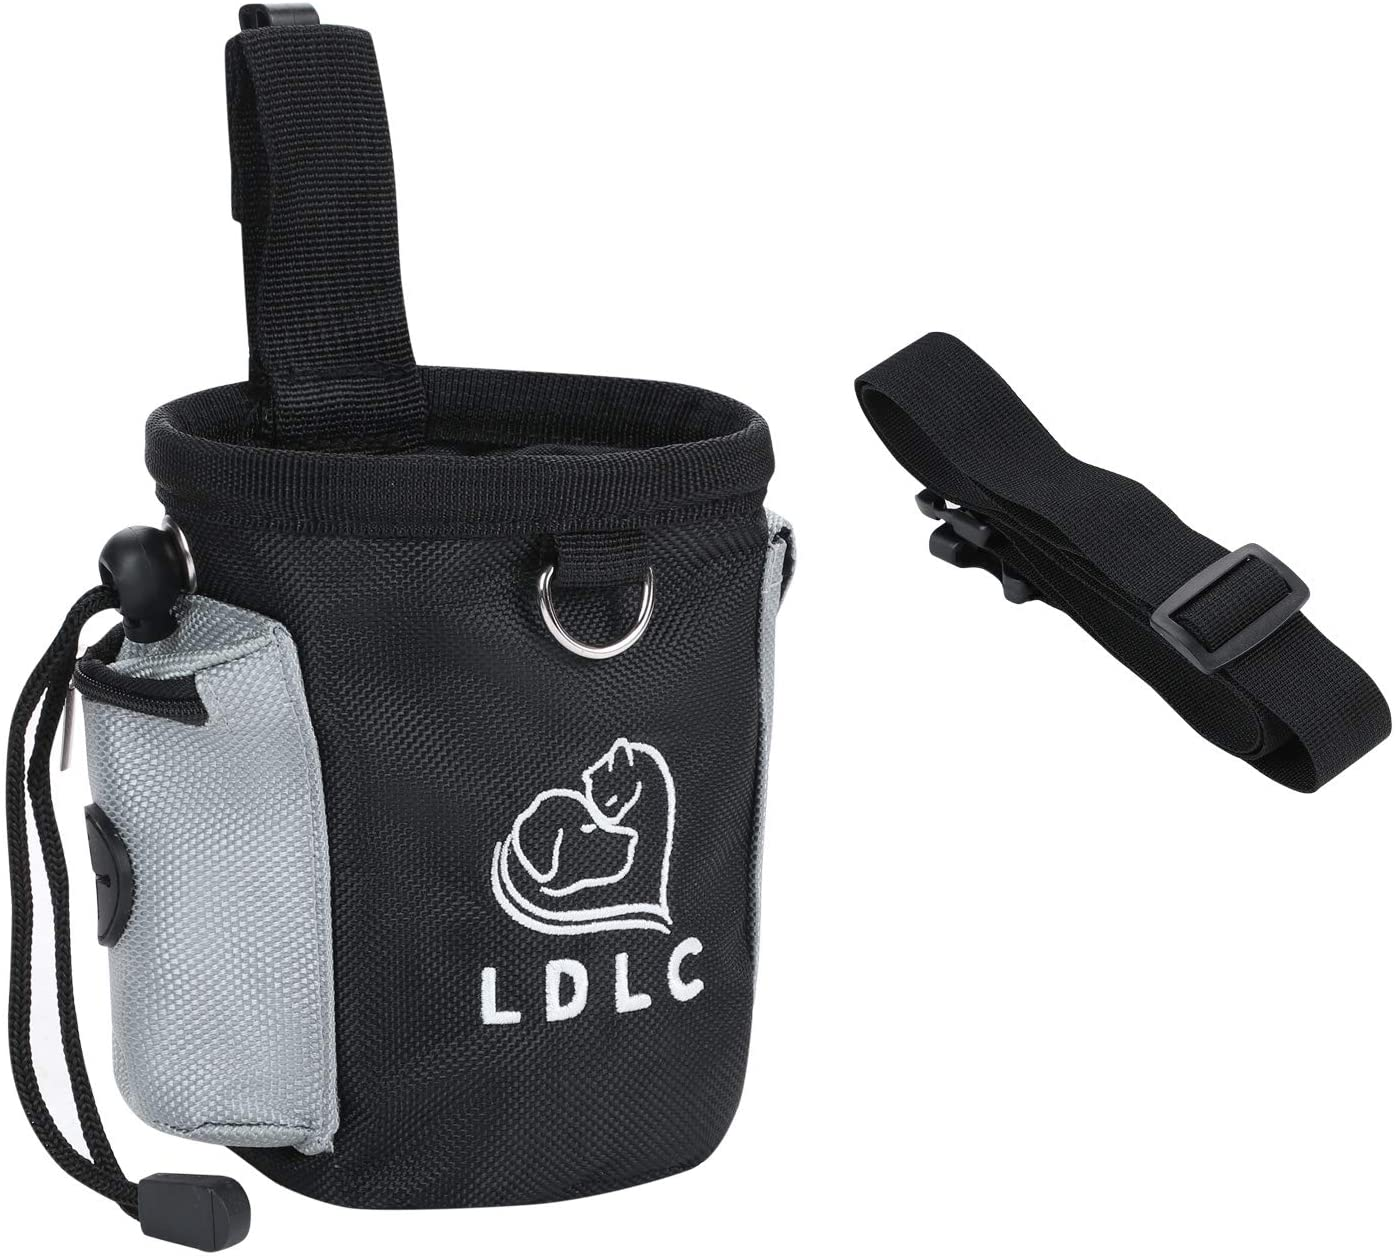 Dog Treat Bag Portable Pet Treat Trainting Pouch for Puppy Small Dog Bait Holer Food Storage Container with Adjustable Waist Strap and Poop Bag Dispenser, Easily Carries Treats, Kibbles, Pet Toys